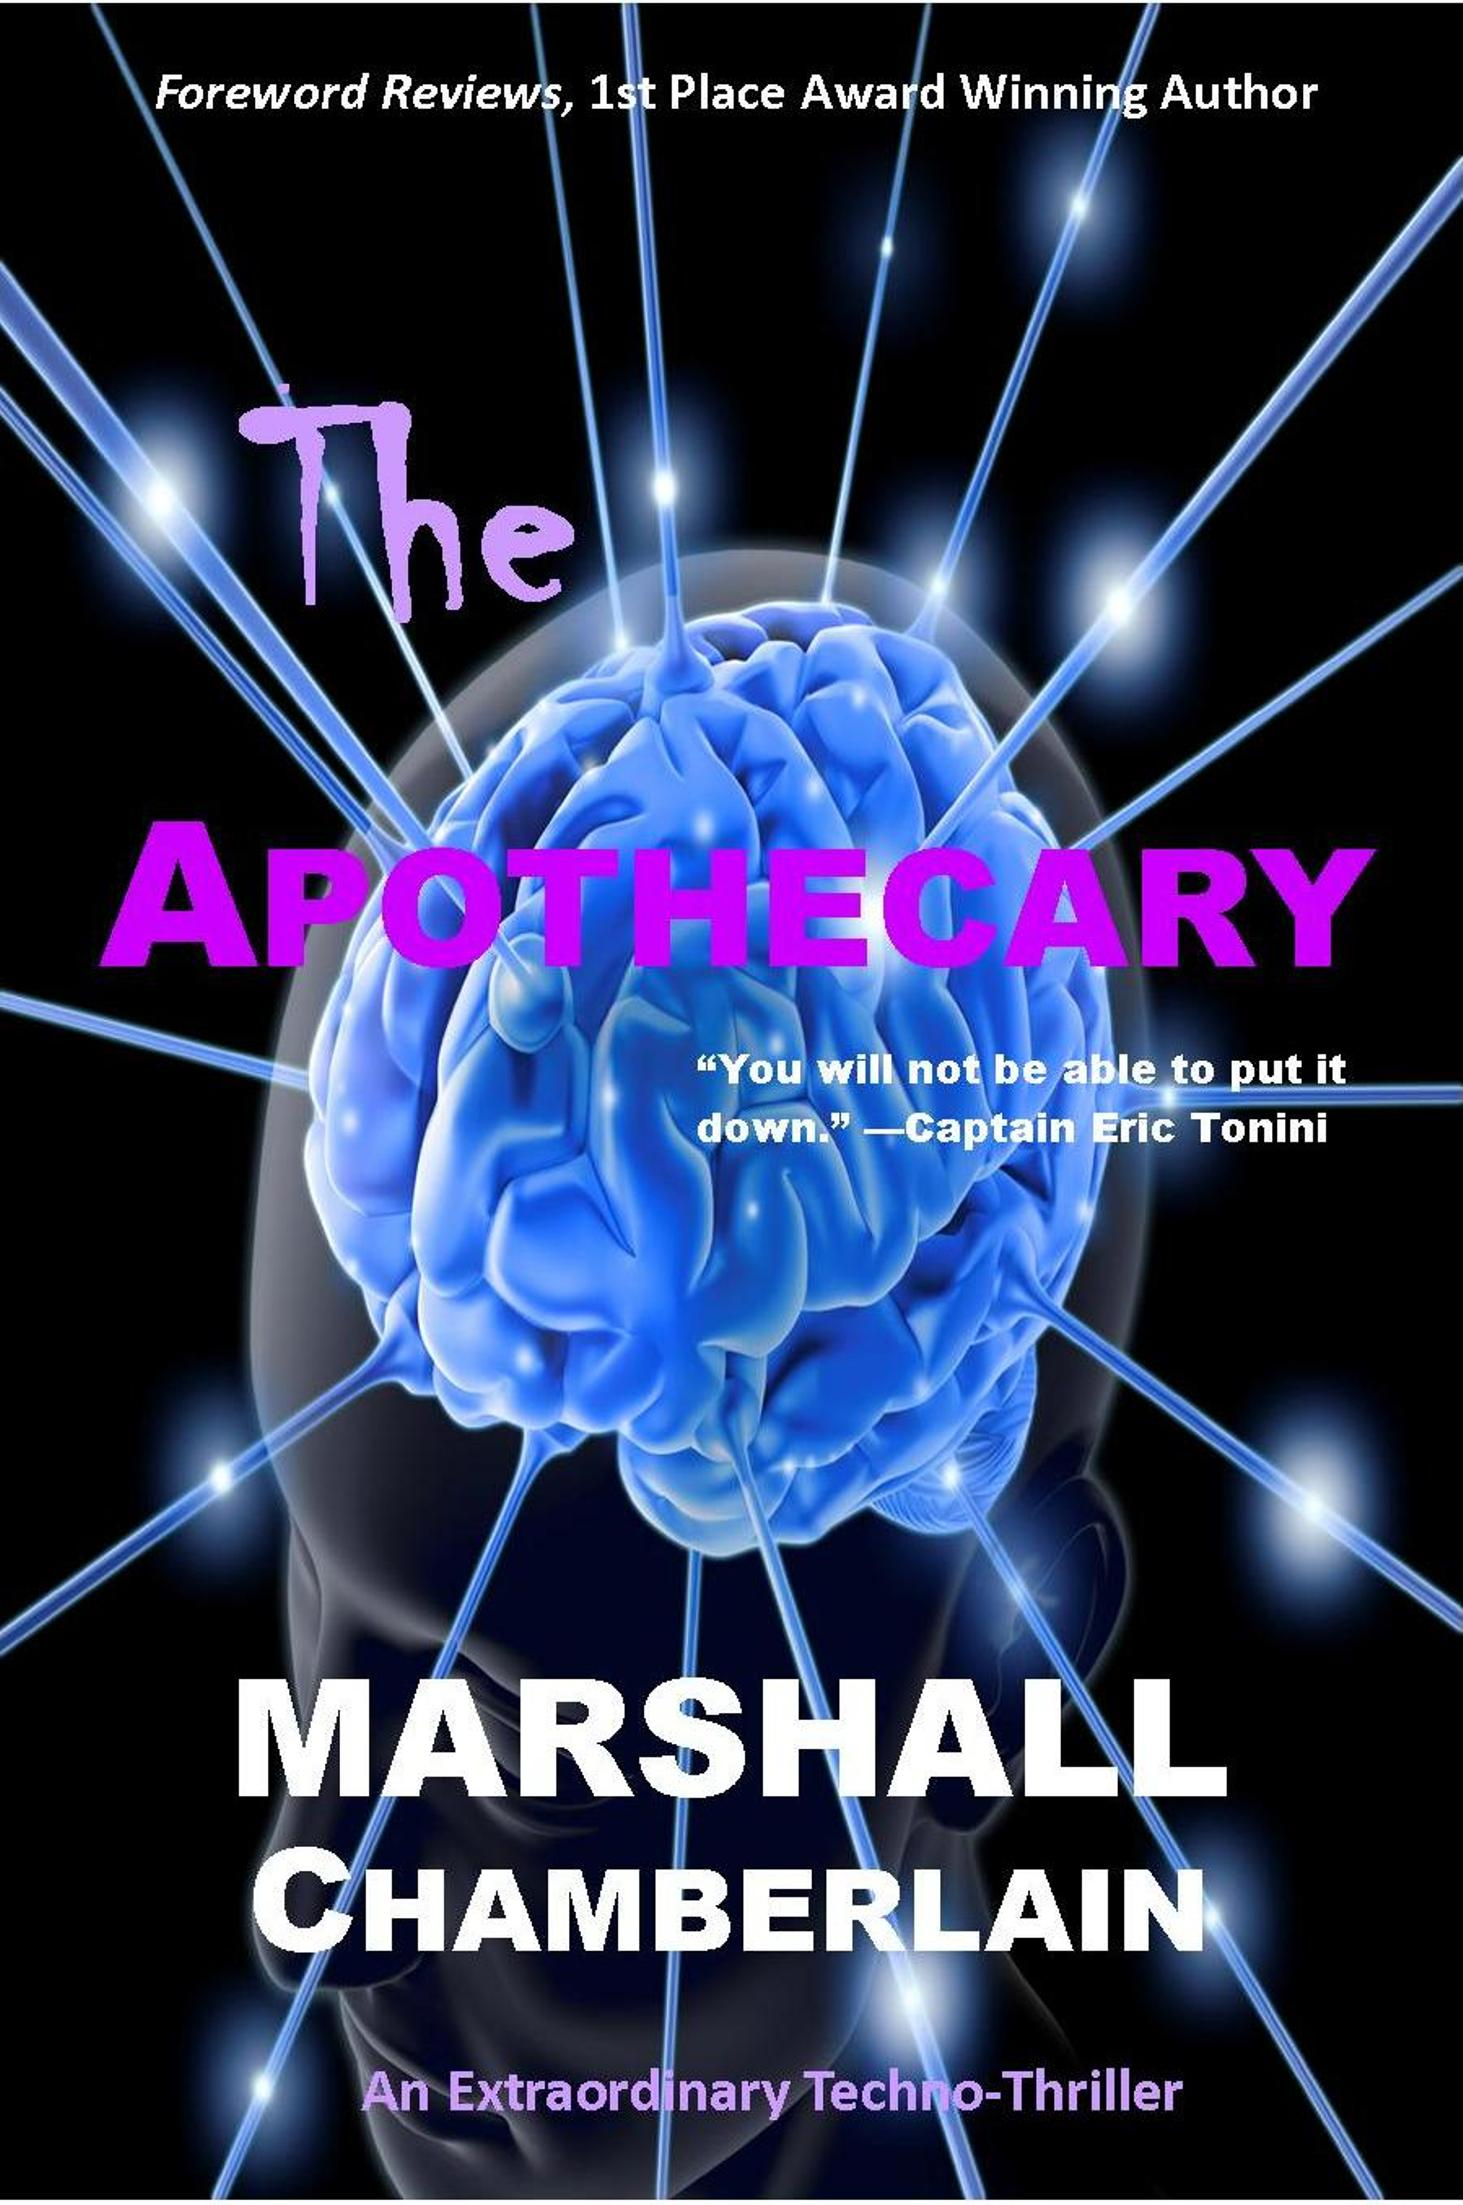 The Apothecary by Marshall Chamberlain